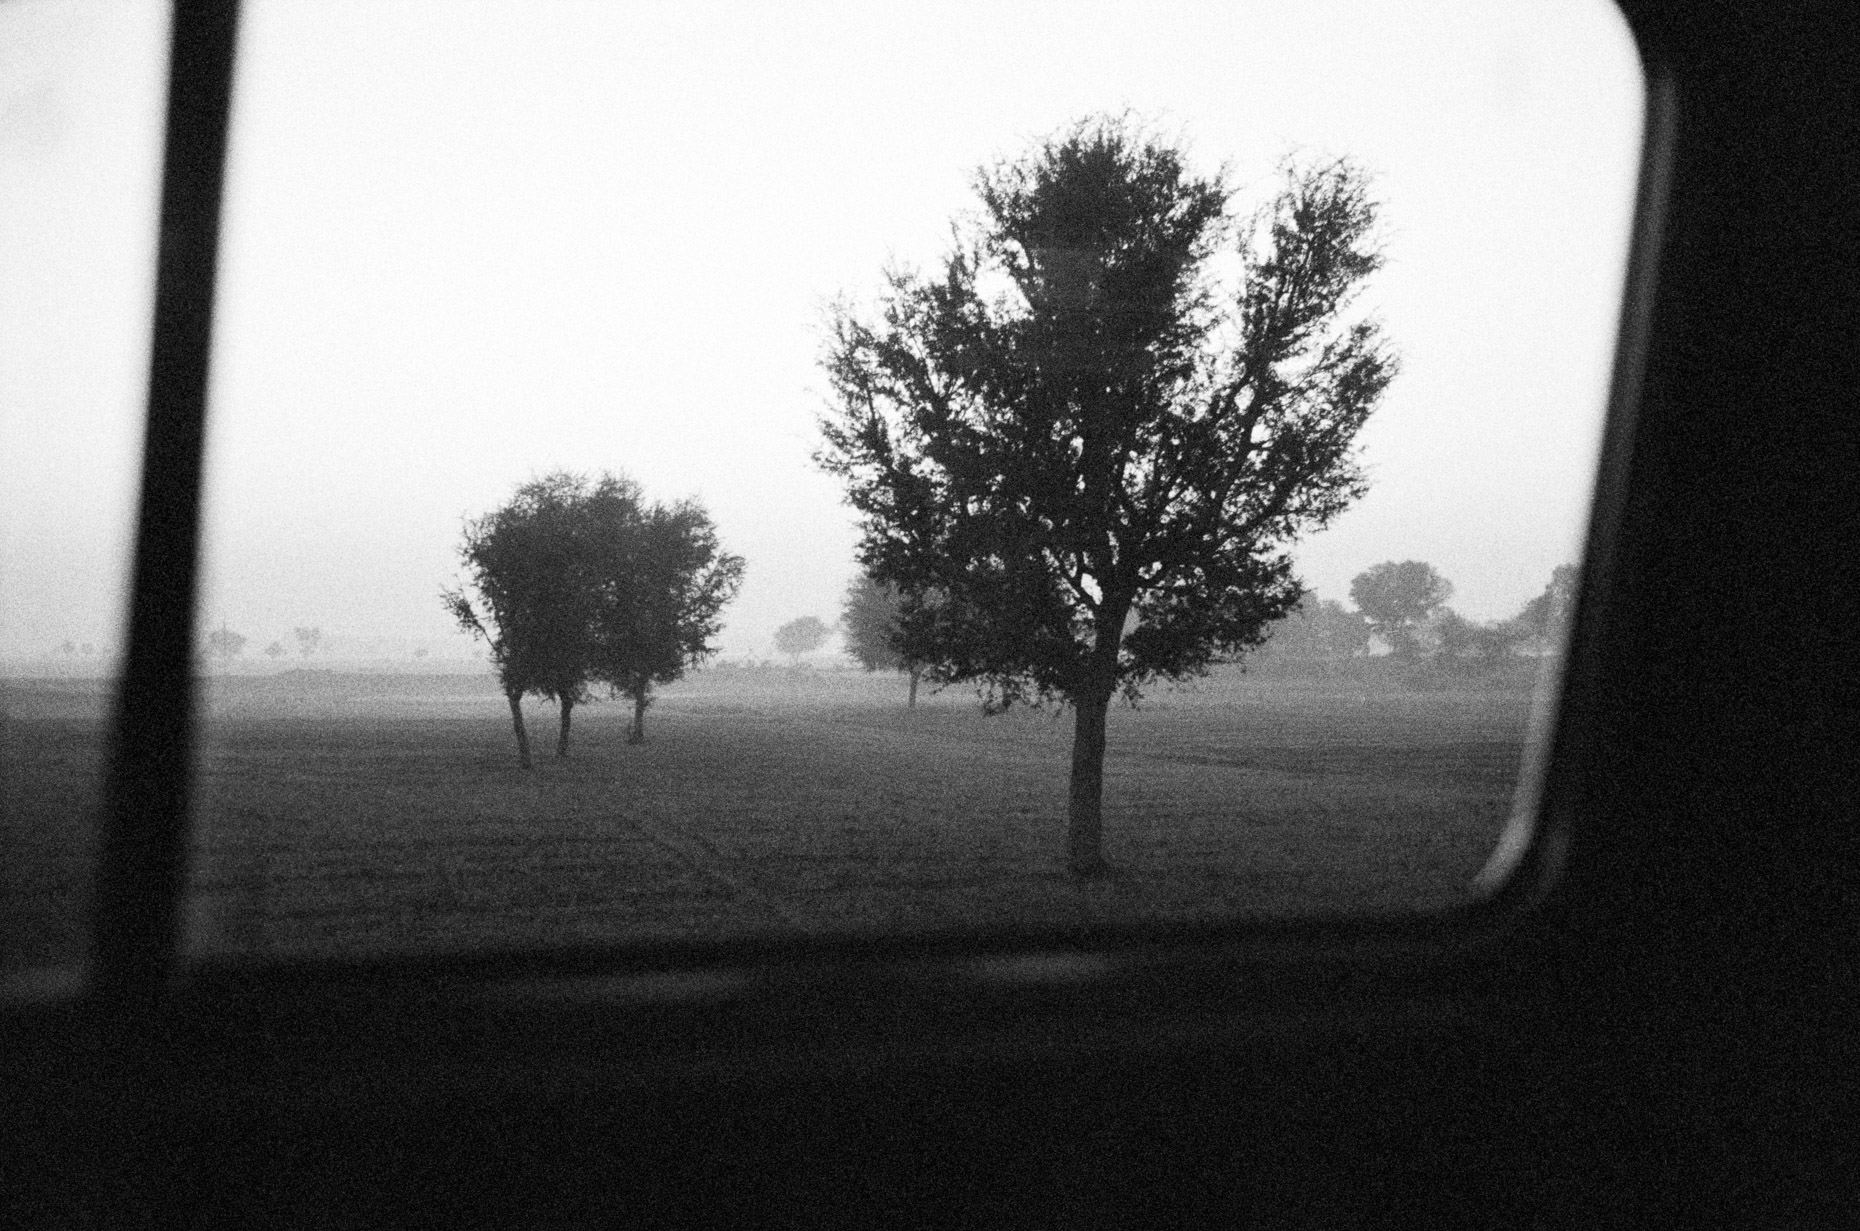 Trees at Dawn on the road to Jodhpur